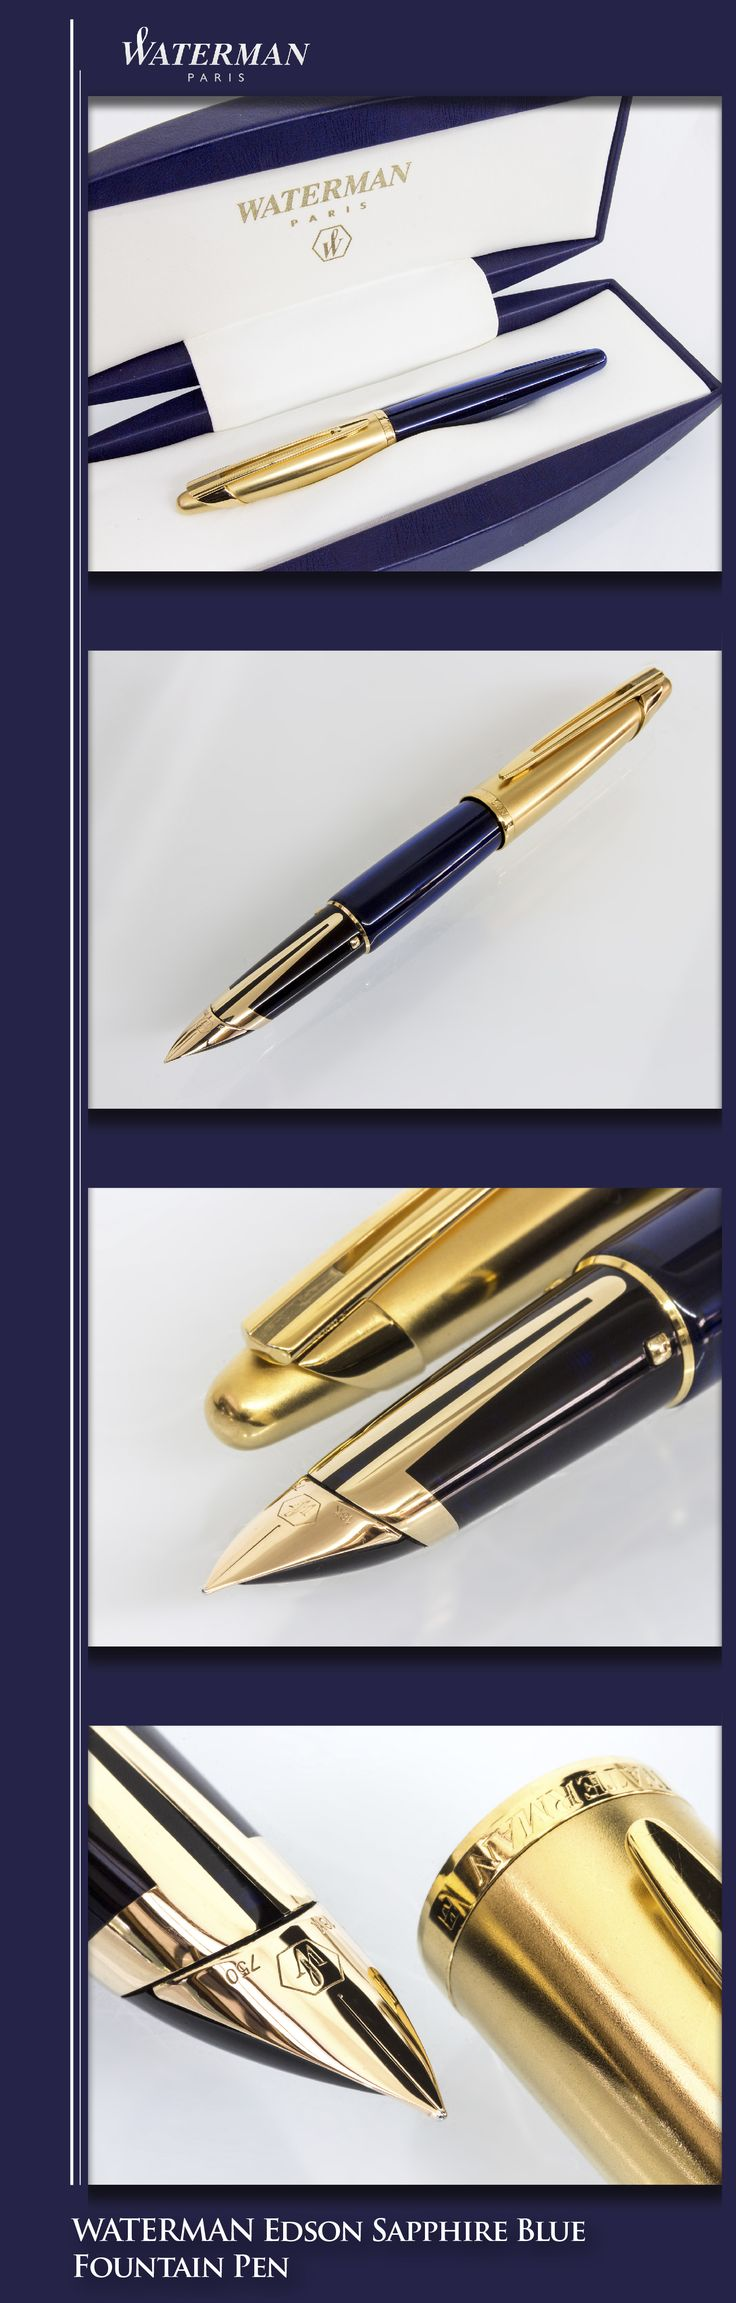 1000 Ideas About Waterman Fountain Pen On Pinterest